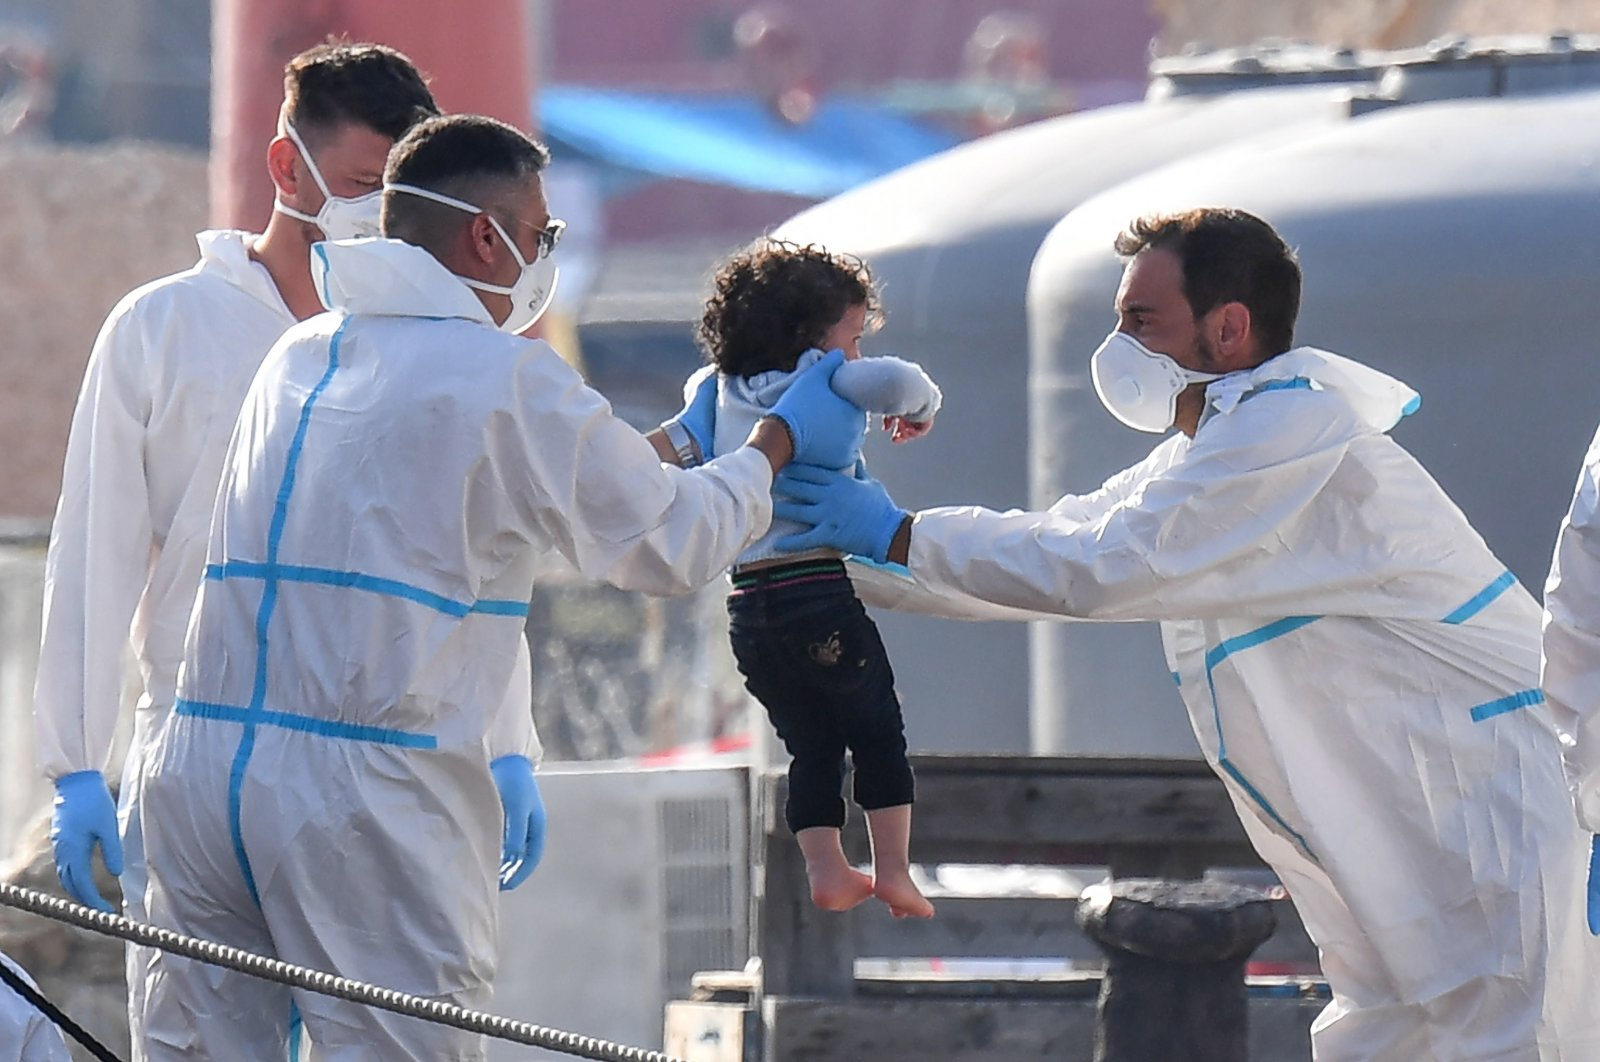 Italian immigration officers help a child disembark from a ship as a group of migrants arrives from North Africa on the island of Lampedusa, southern Italy, Aug. 3, 2020. (EPA Photo)